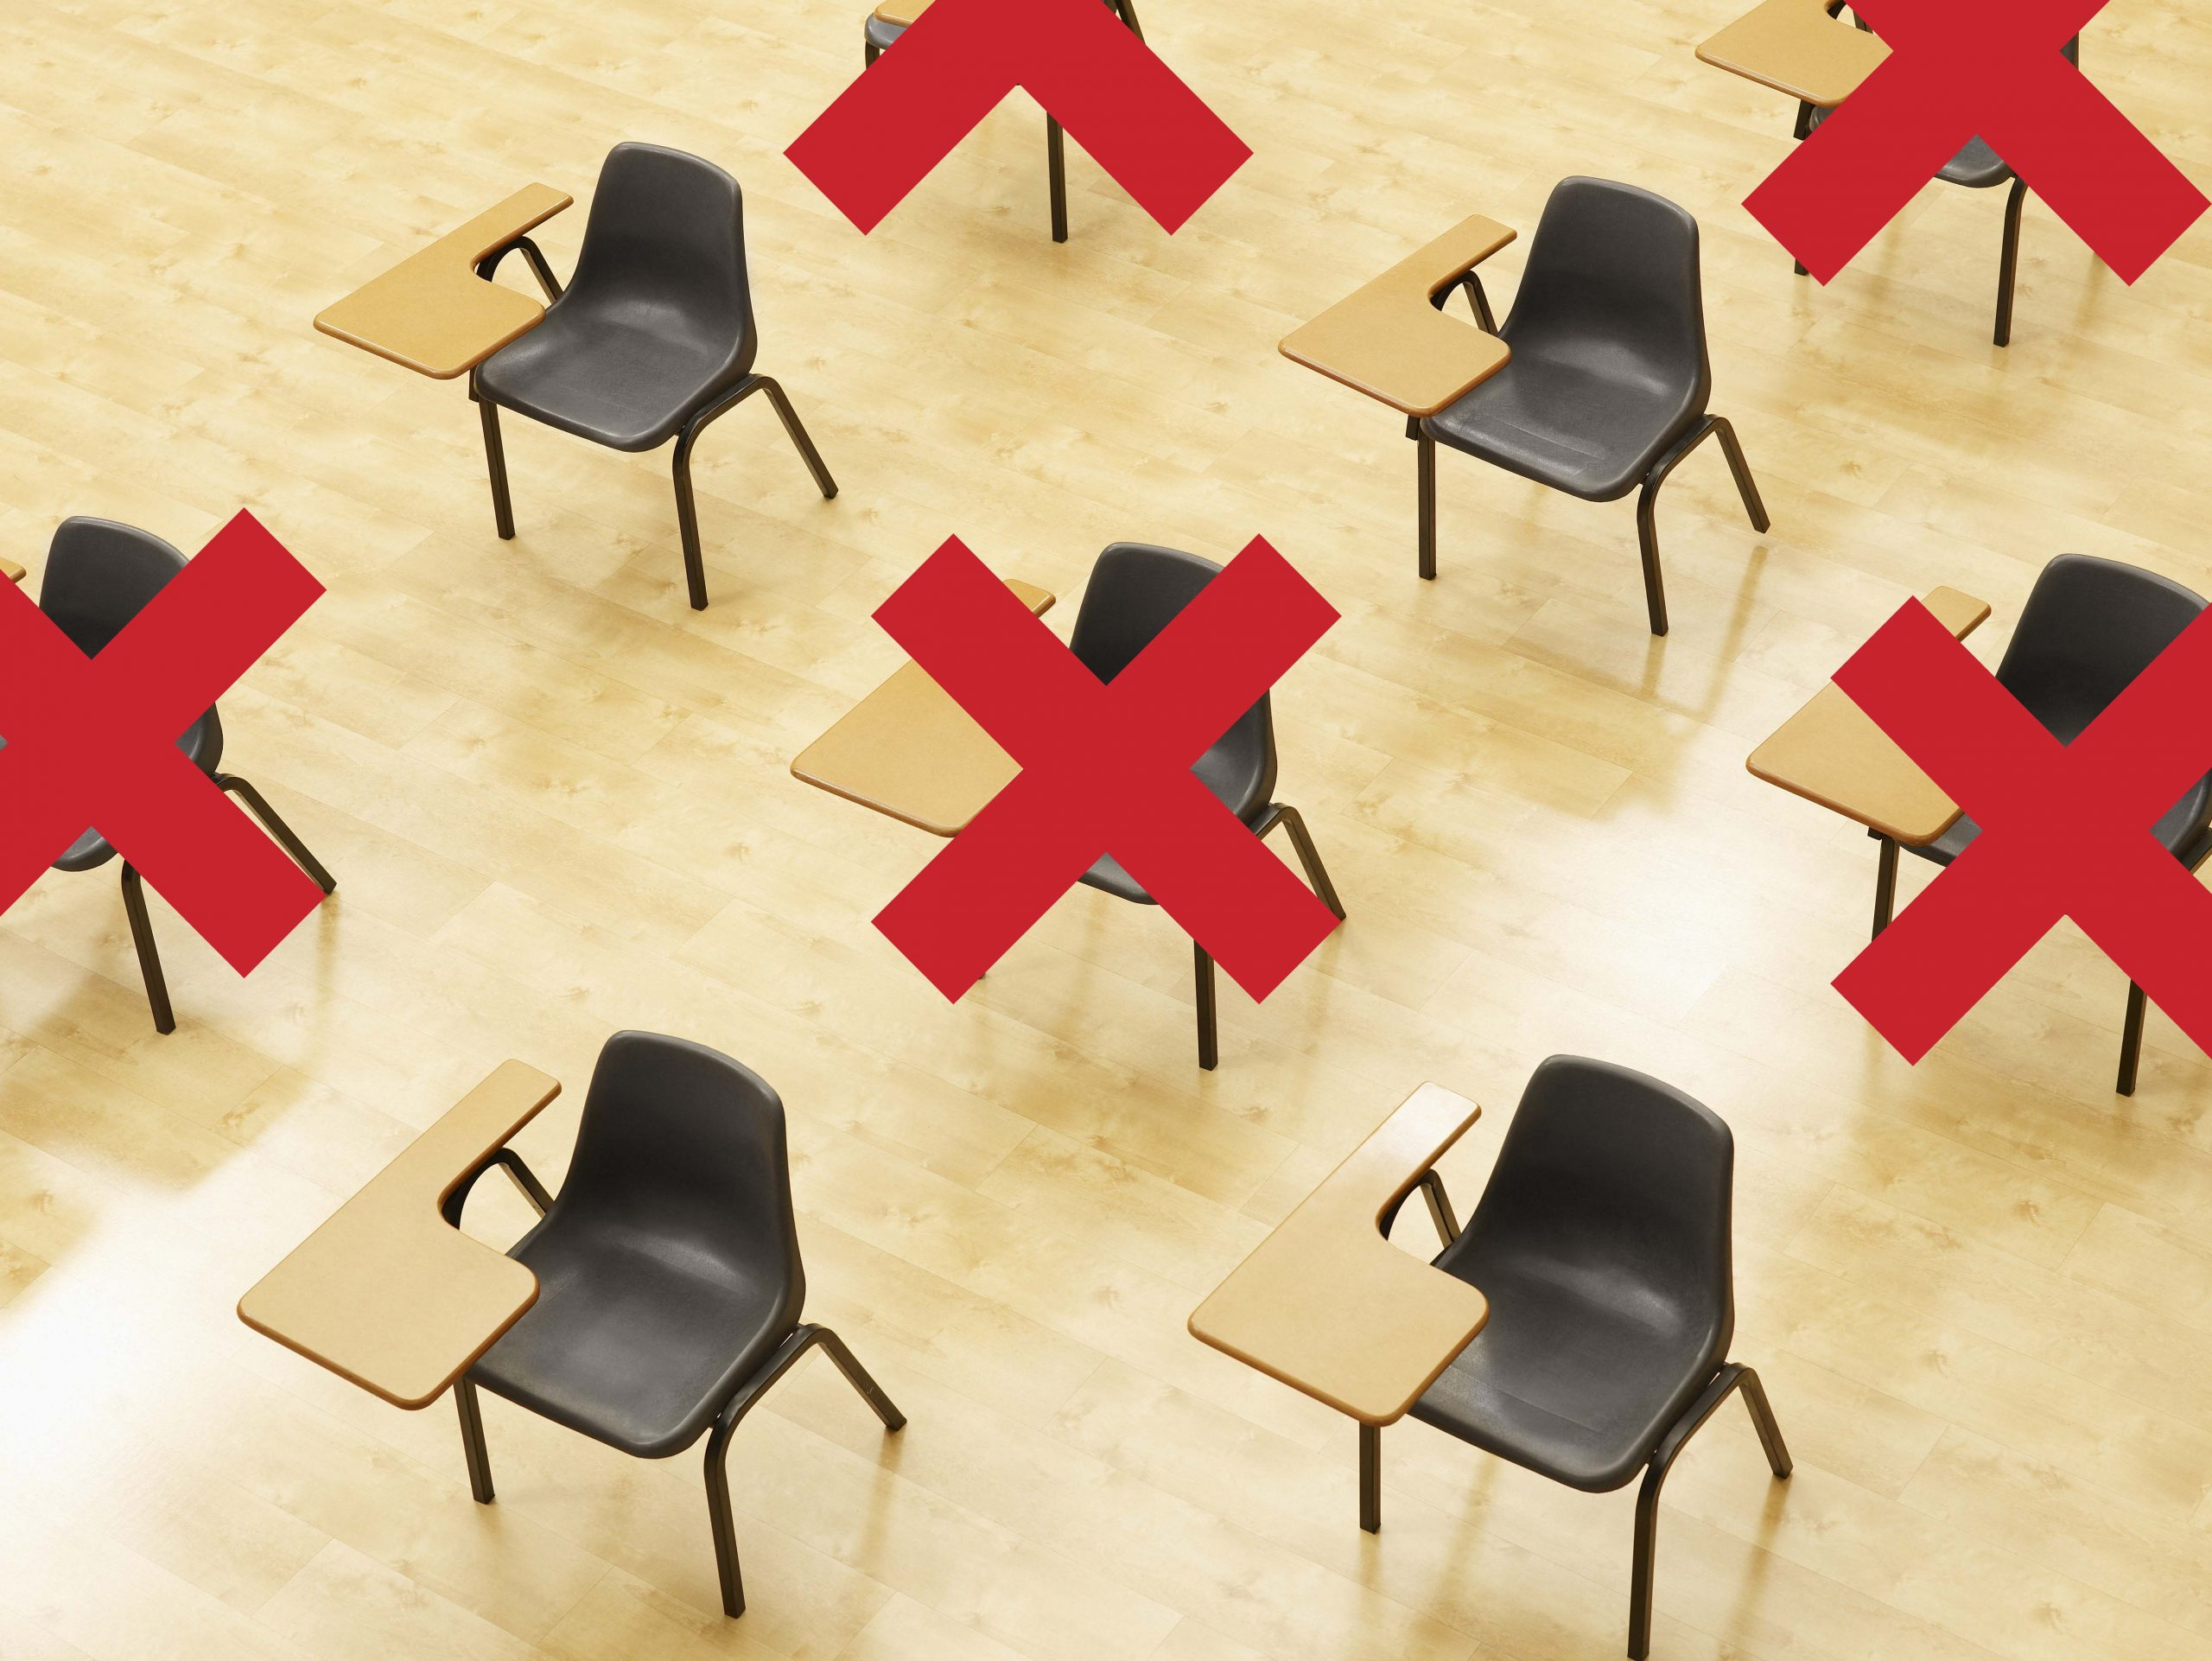 Desks in empty classroom with social distancing guidelines